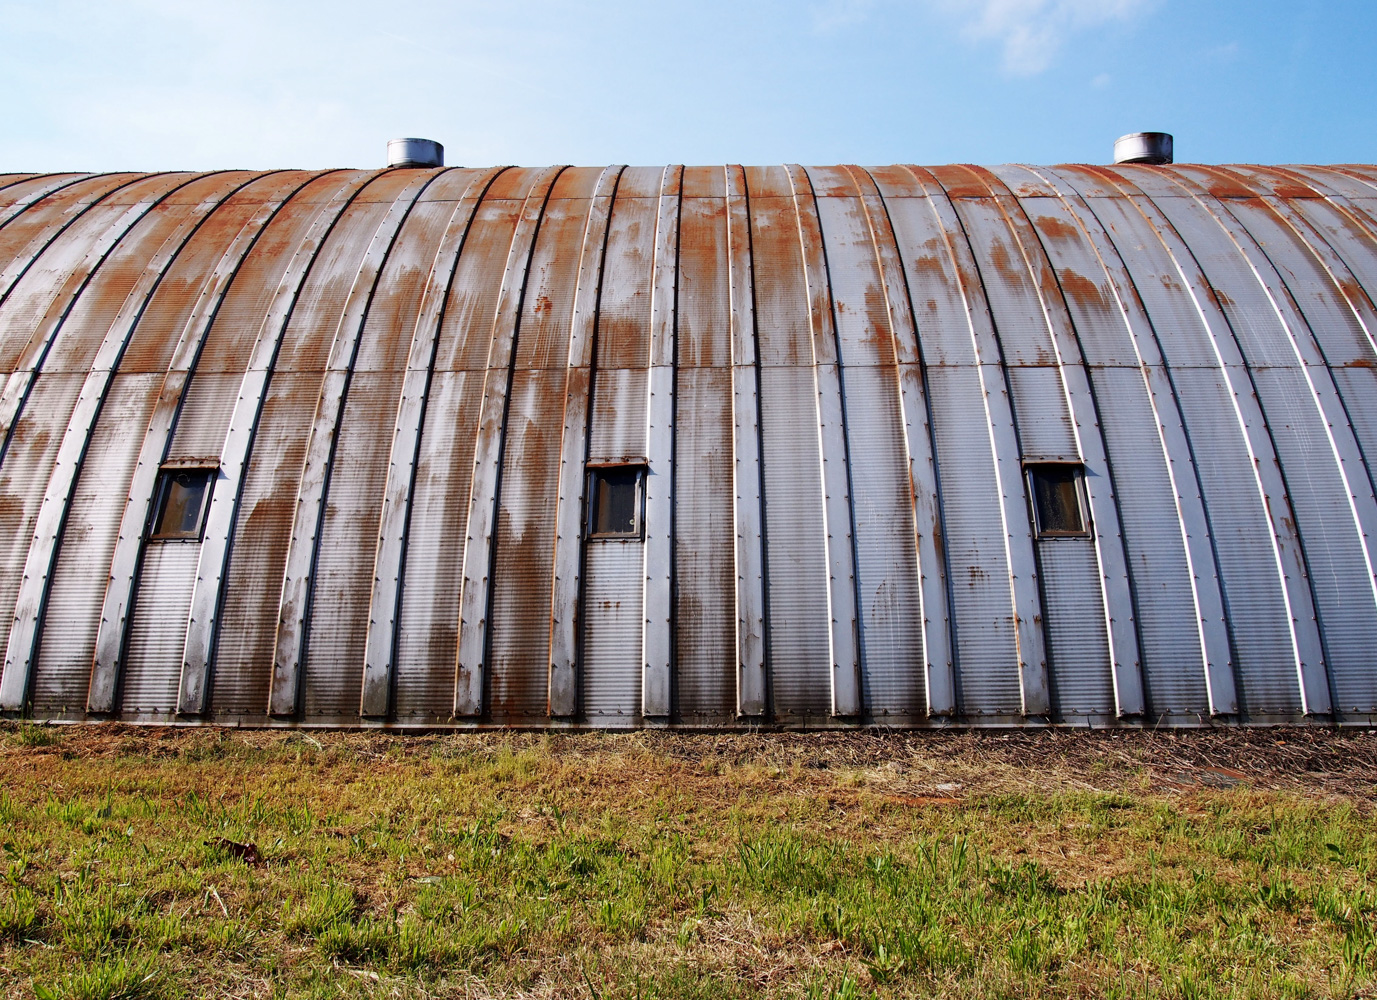 quonset hut, Shelby, NC